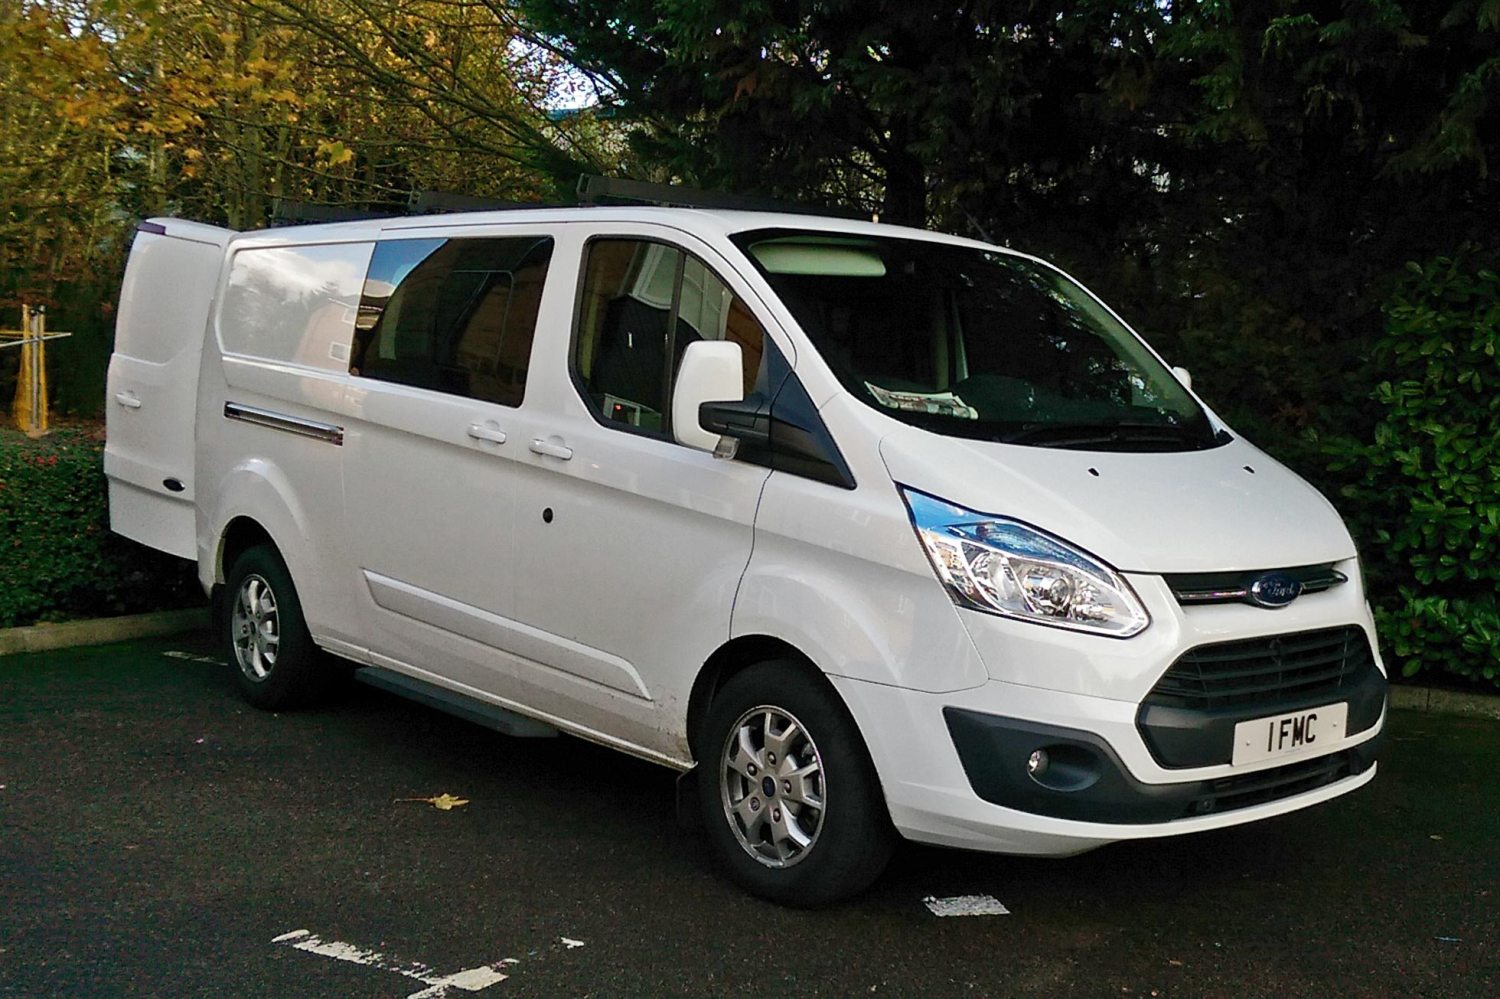 10 reasons why driving a van is awesome